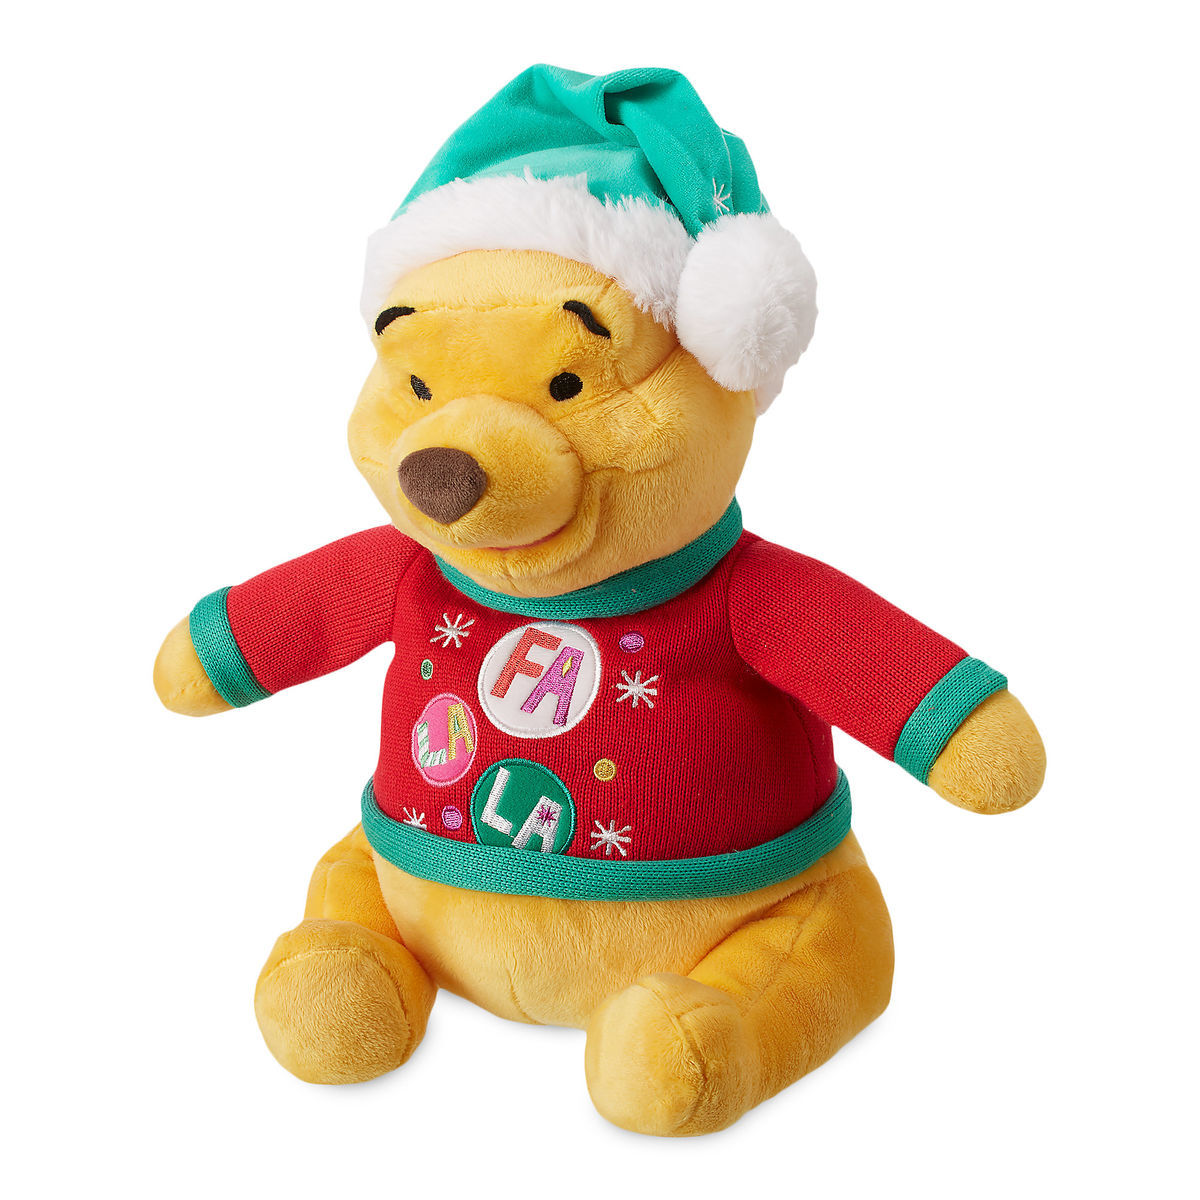 Disney Holiday Plush - Winnie The Pooh - Medium